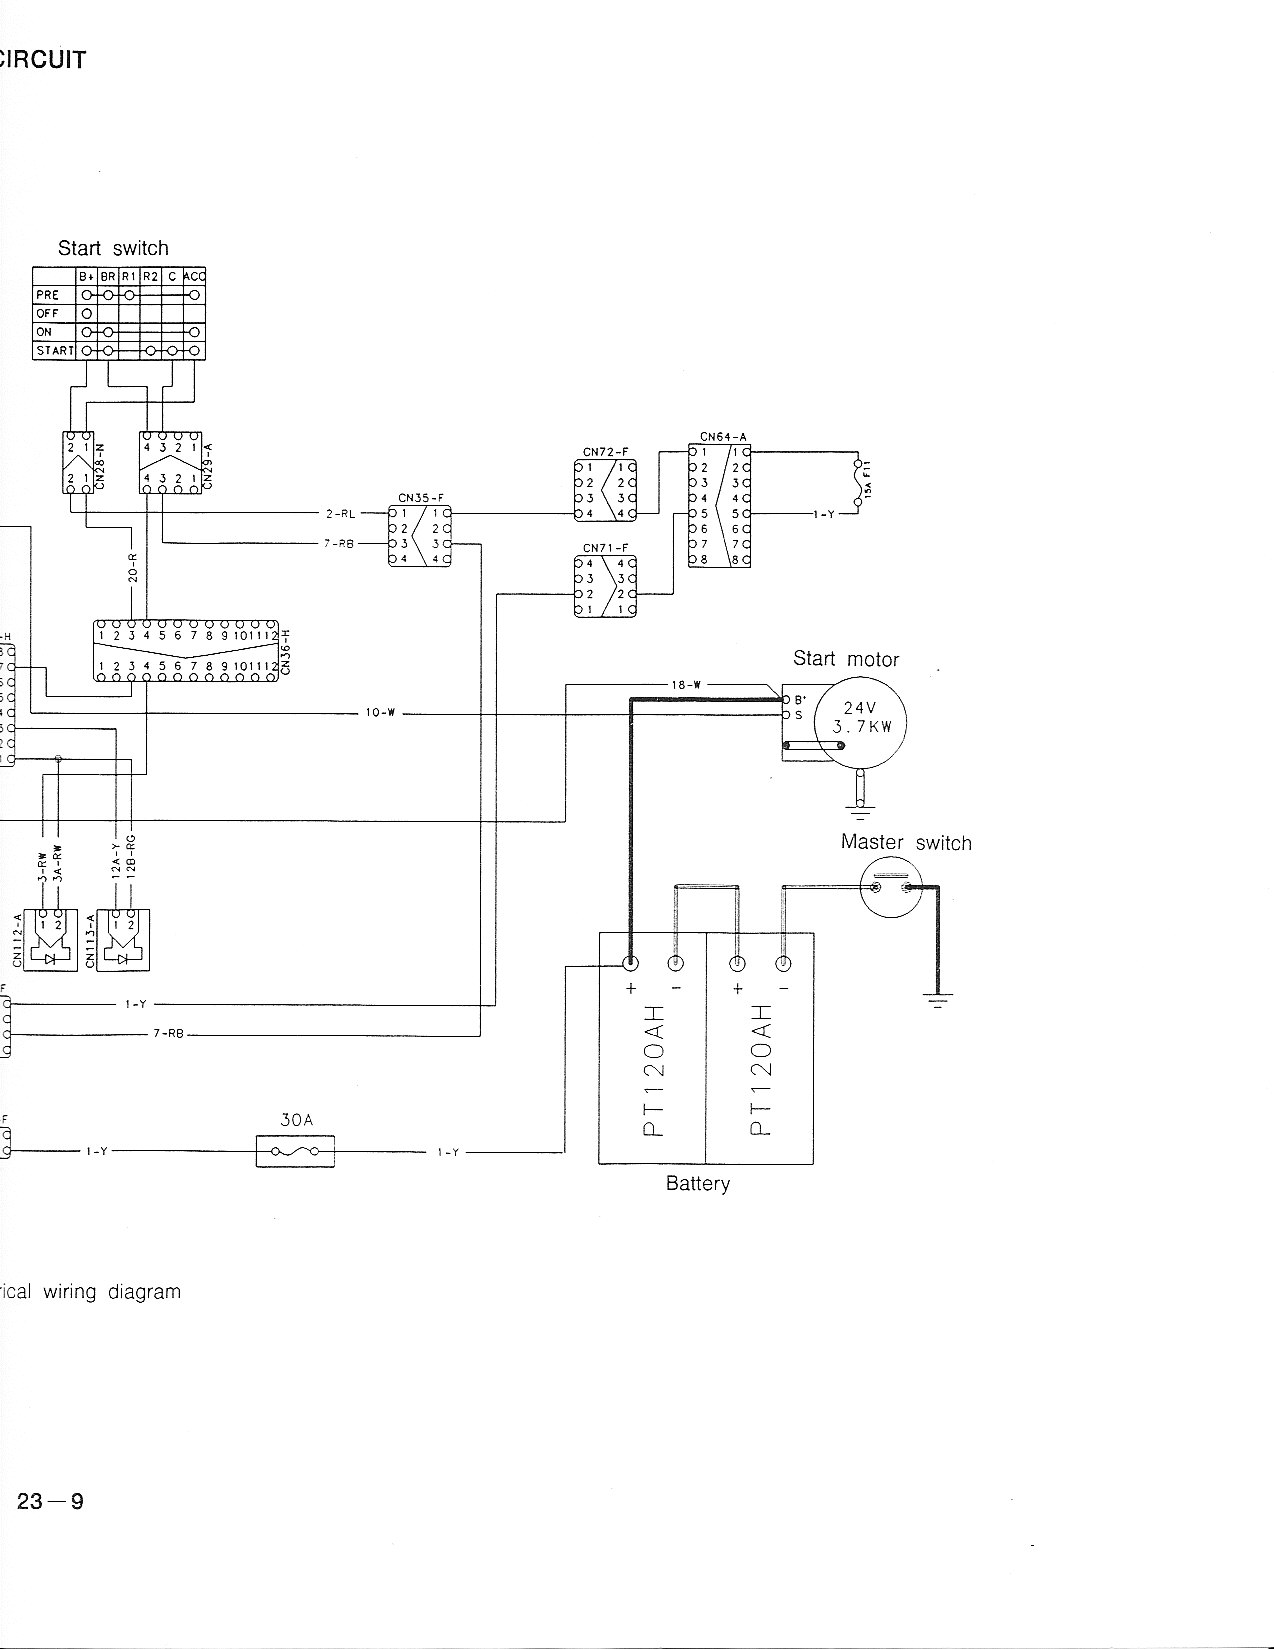 Diagram Of Starter And Flywheel Wire Data Schema 1954 Chevy Wiring Need A Schematic For The Starting System On Solenoid